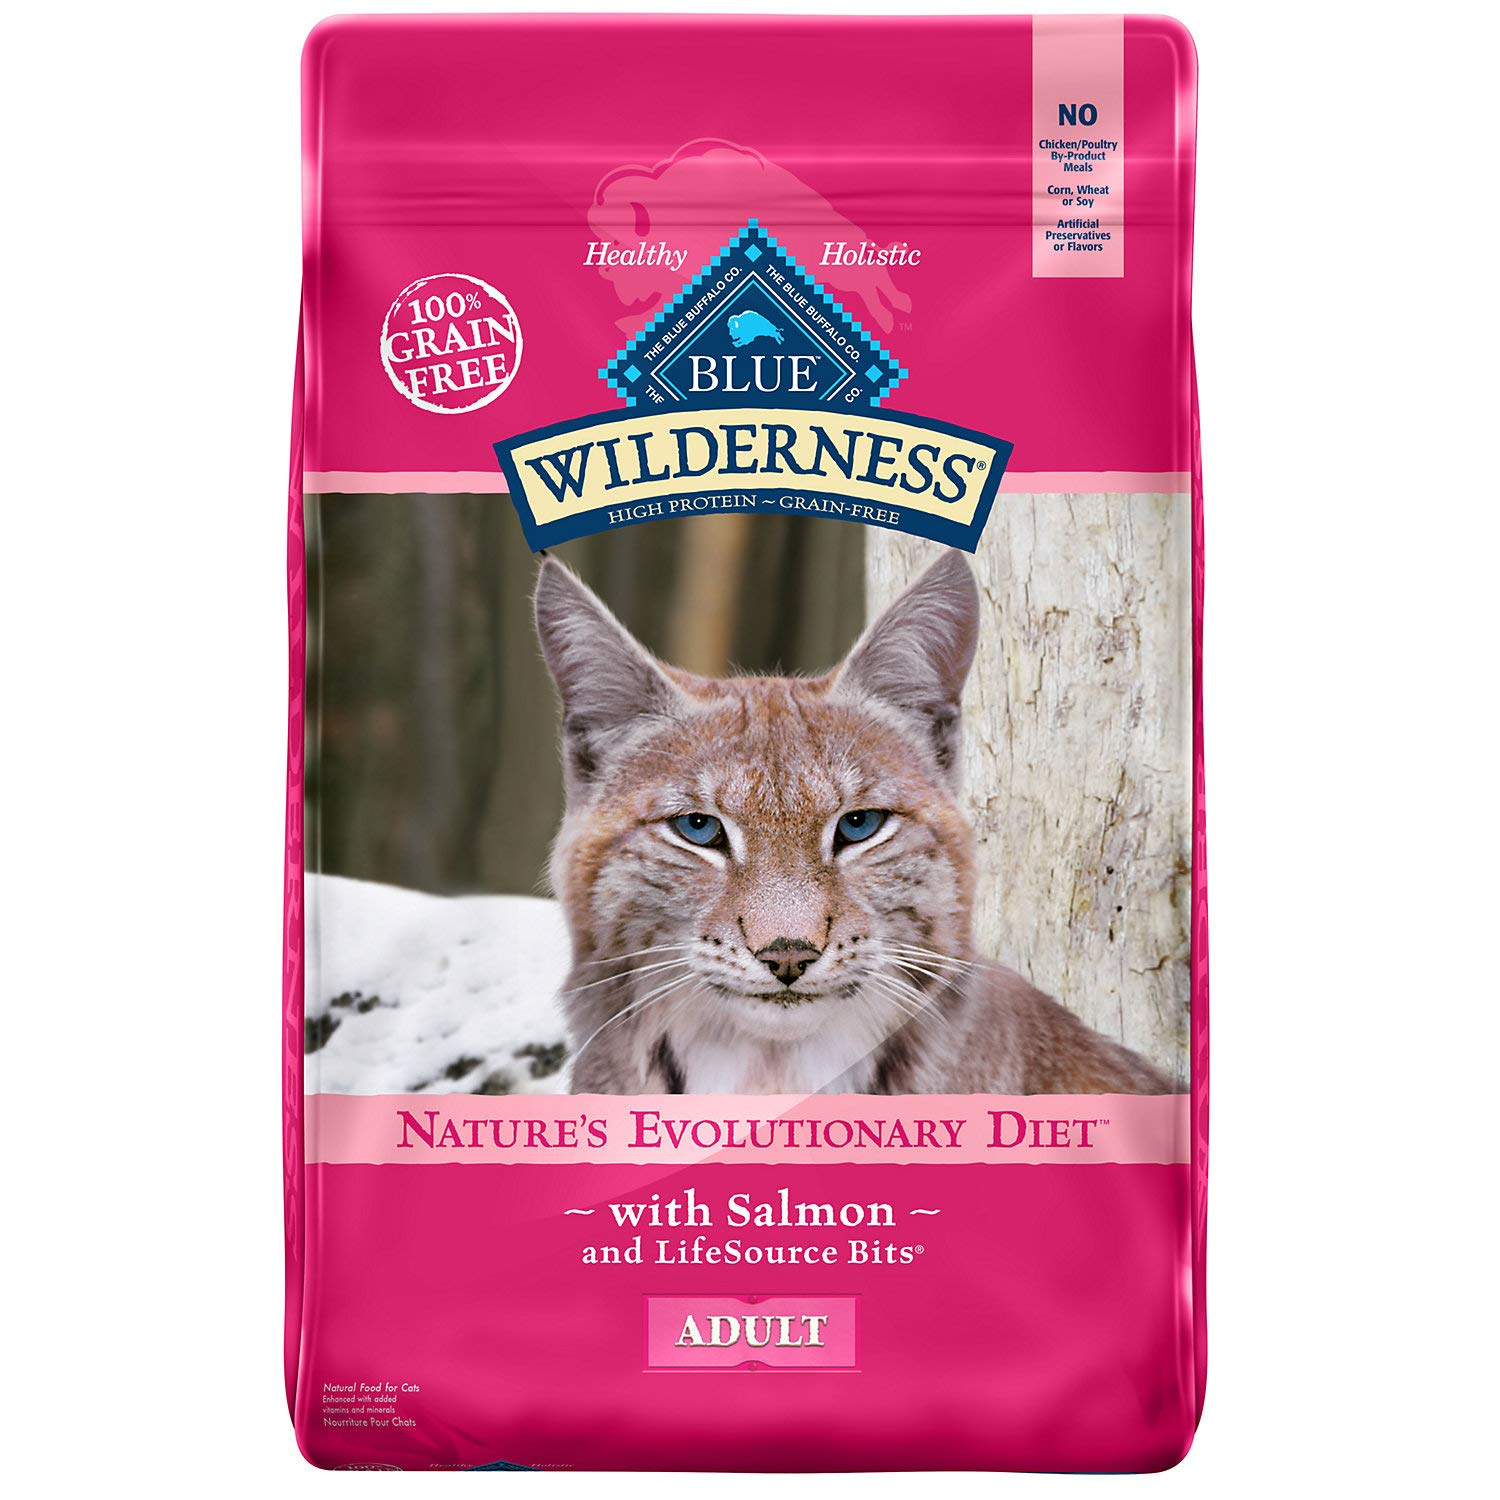 Blue Buffalo Wilderness High Protein Grain Free, Natural Adult Dry Cat Food, Salmon – The Cat Site